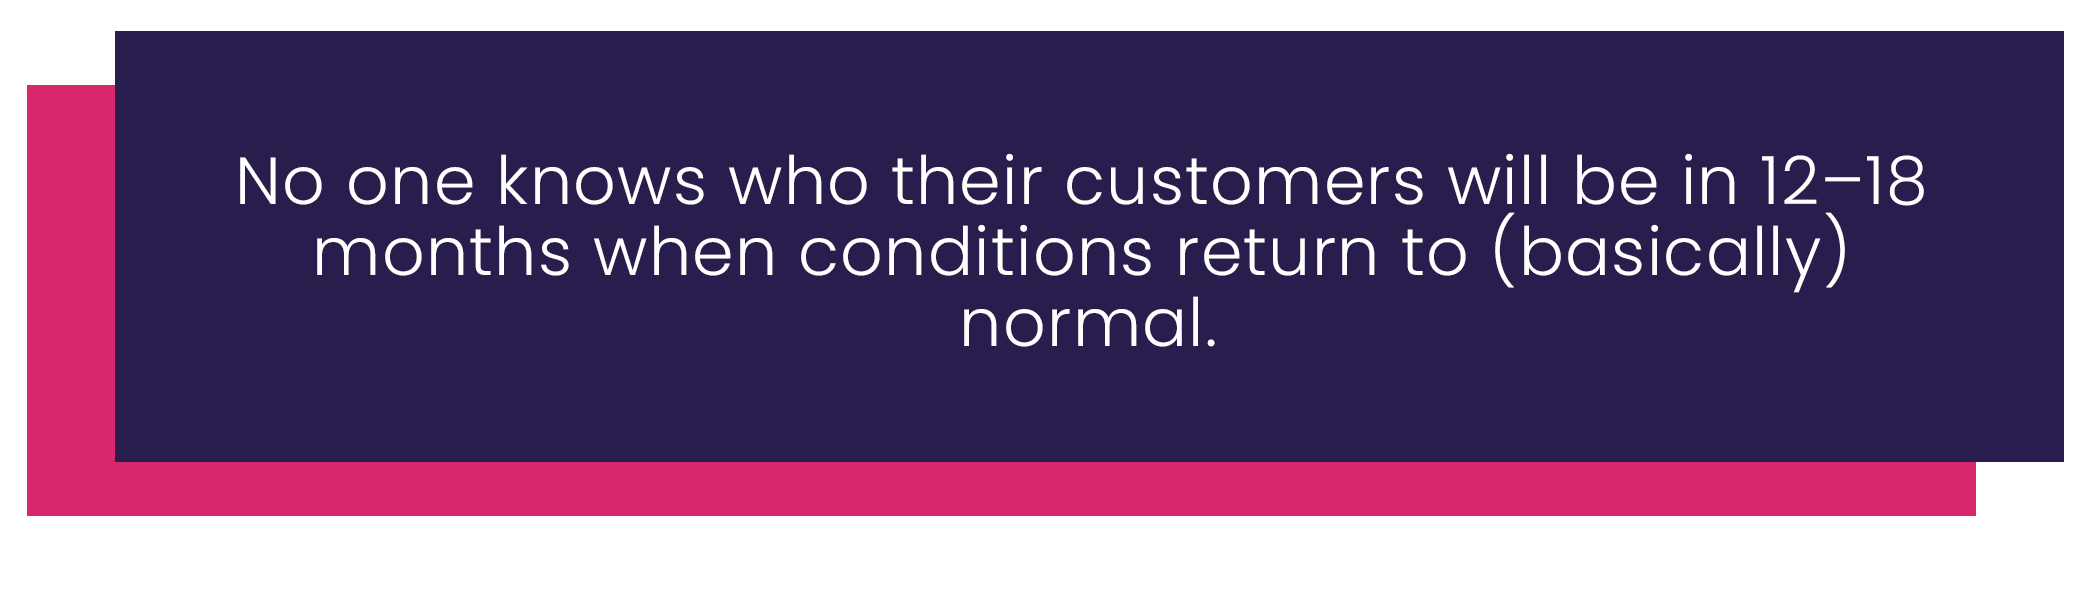 Customer retention after COVID